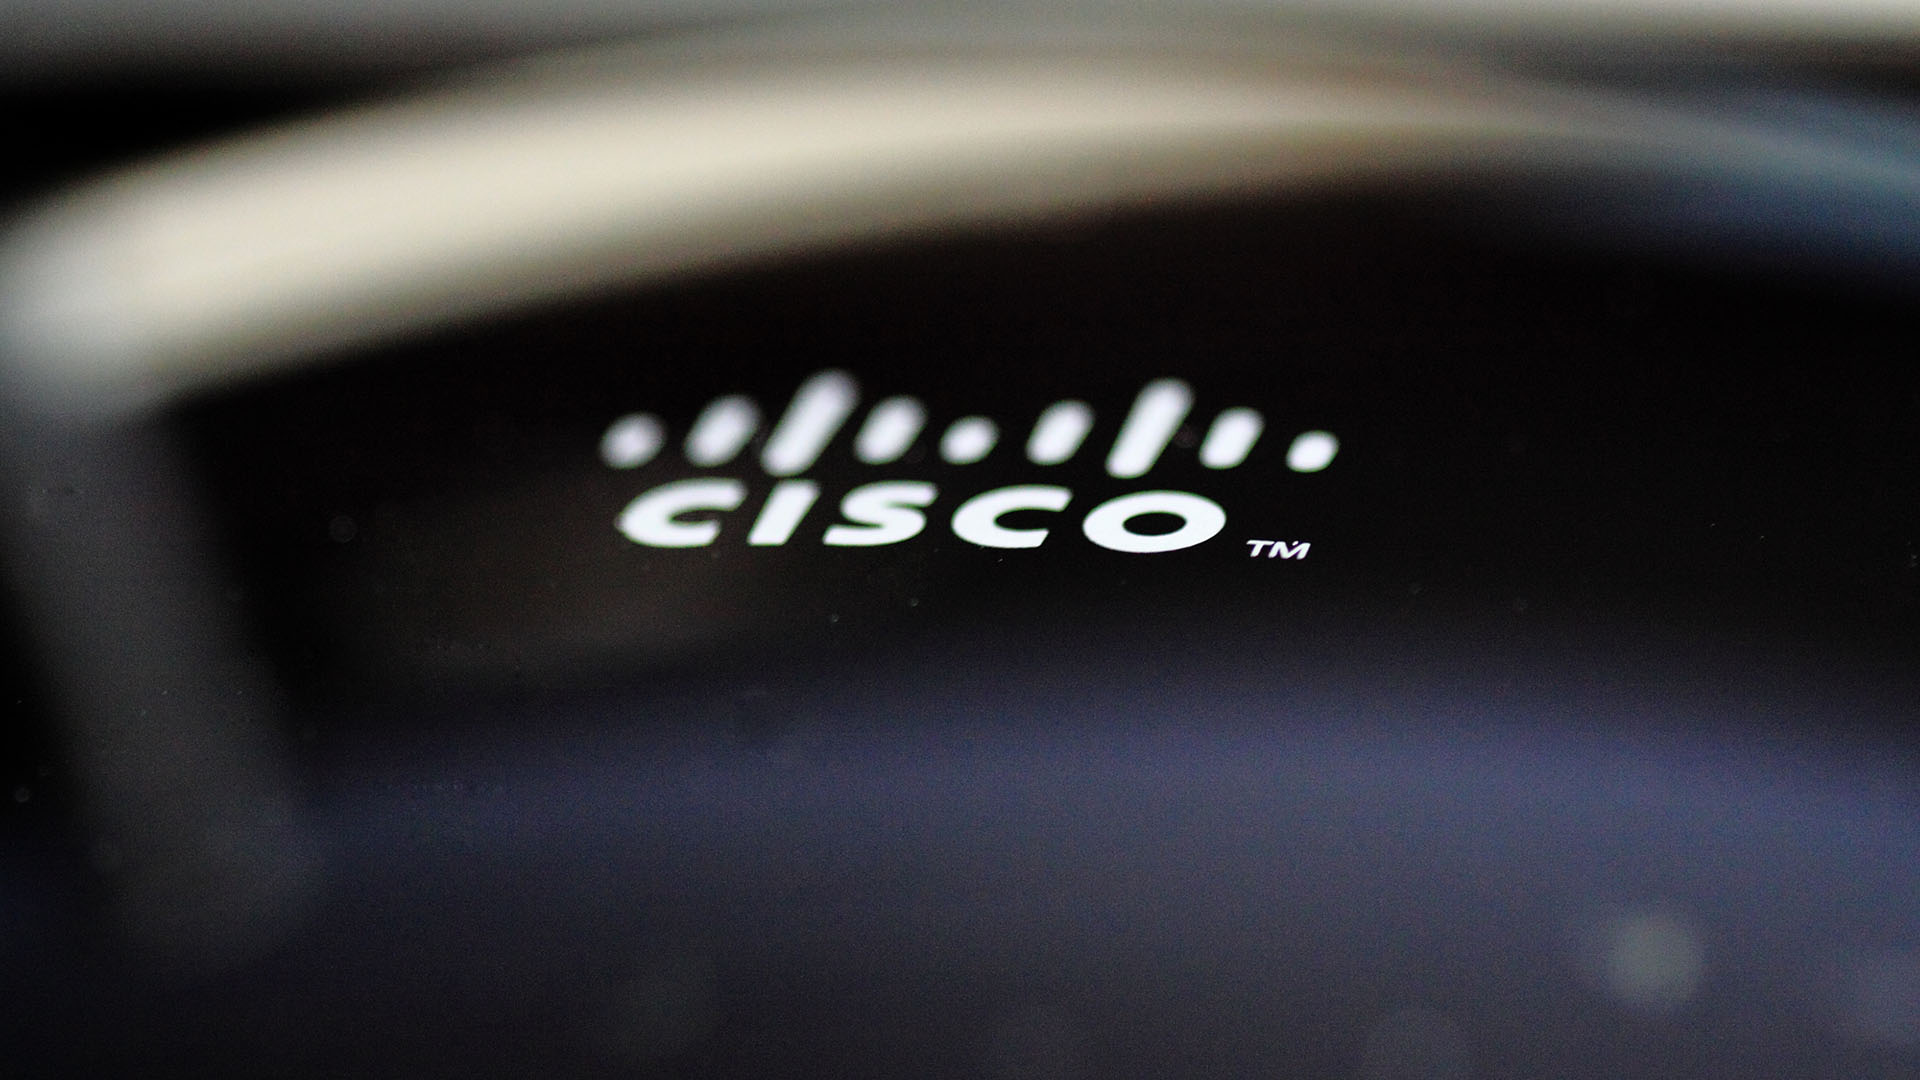 Cisco routeur